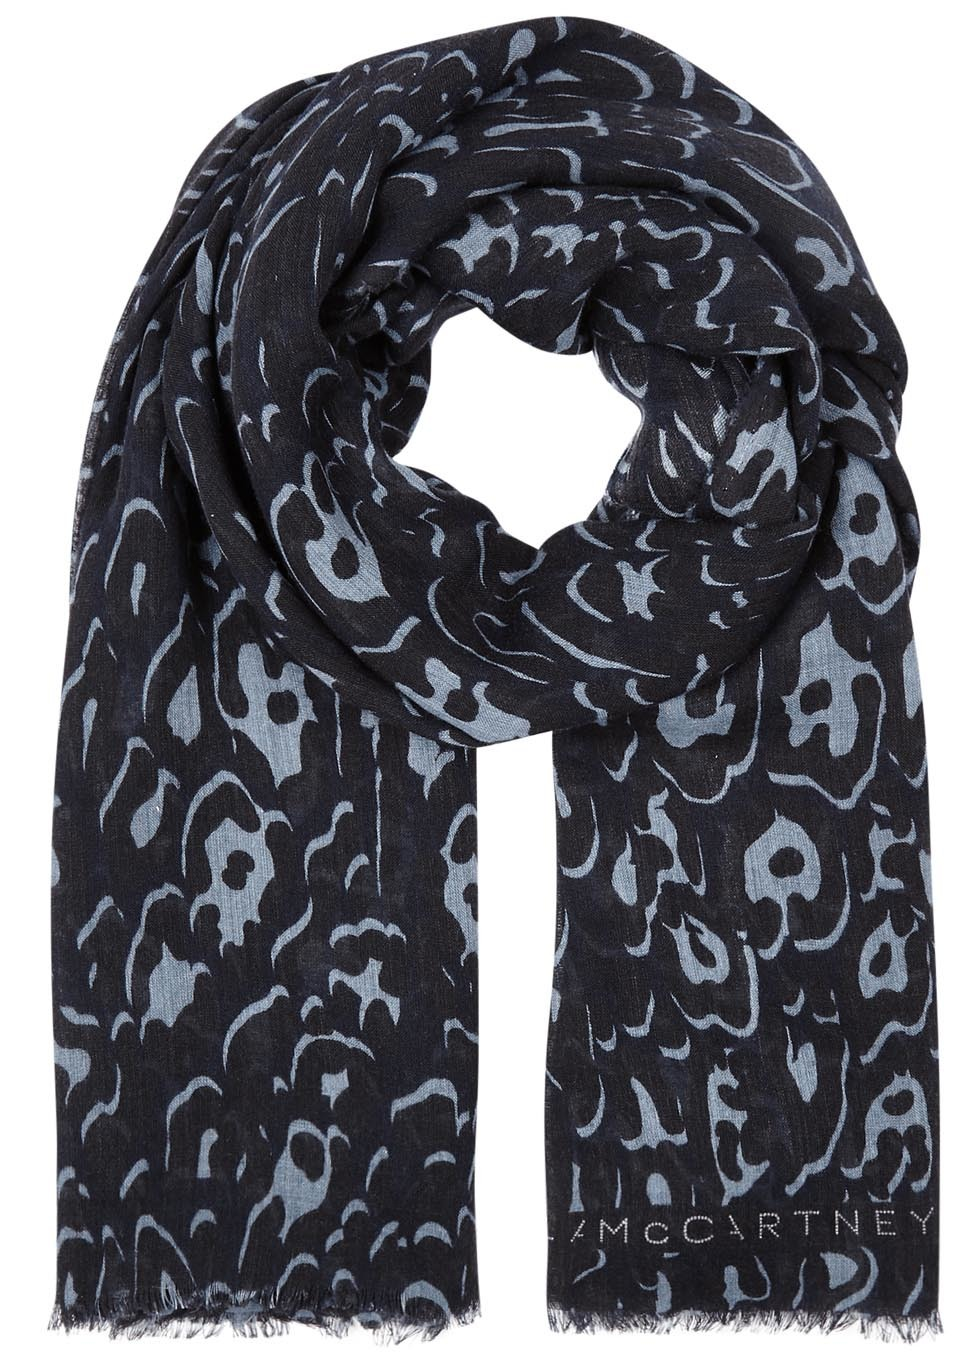 Navy Animal Print Wool Blend Scarf - predominant colour: navy; occasions: casual, creative work; type of pattern: heavy; style: regular; size: standard; material: fabric; pattern: patterned/print; season: s/s 2016; wardrobe: highlight